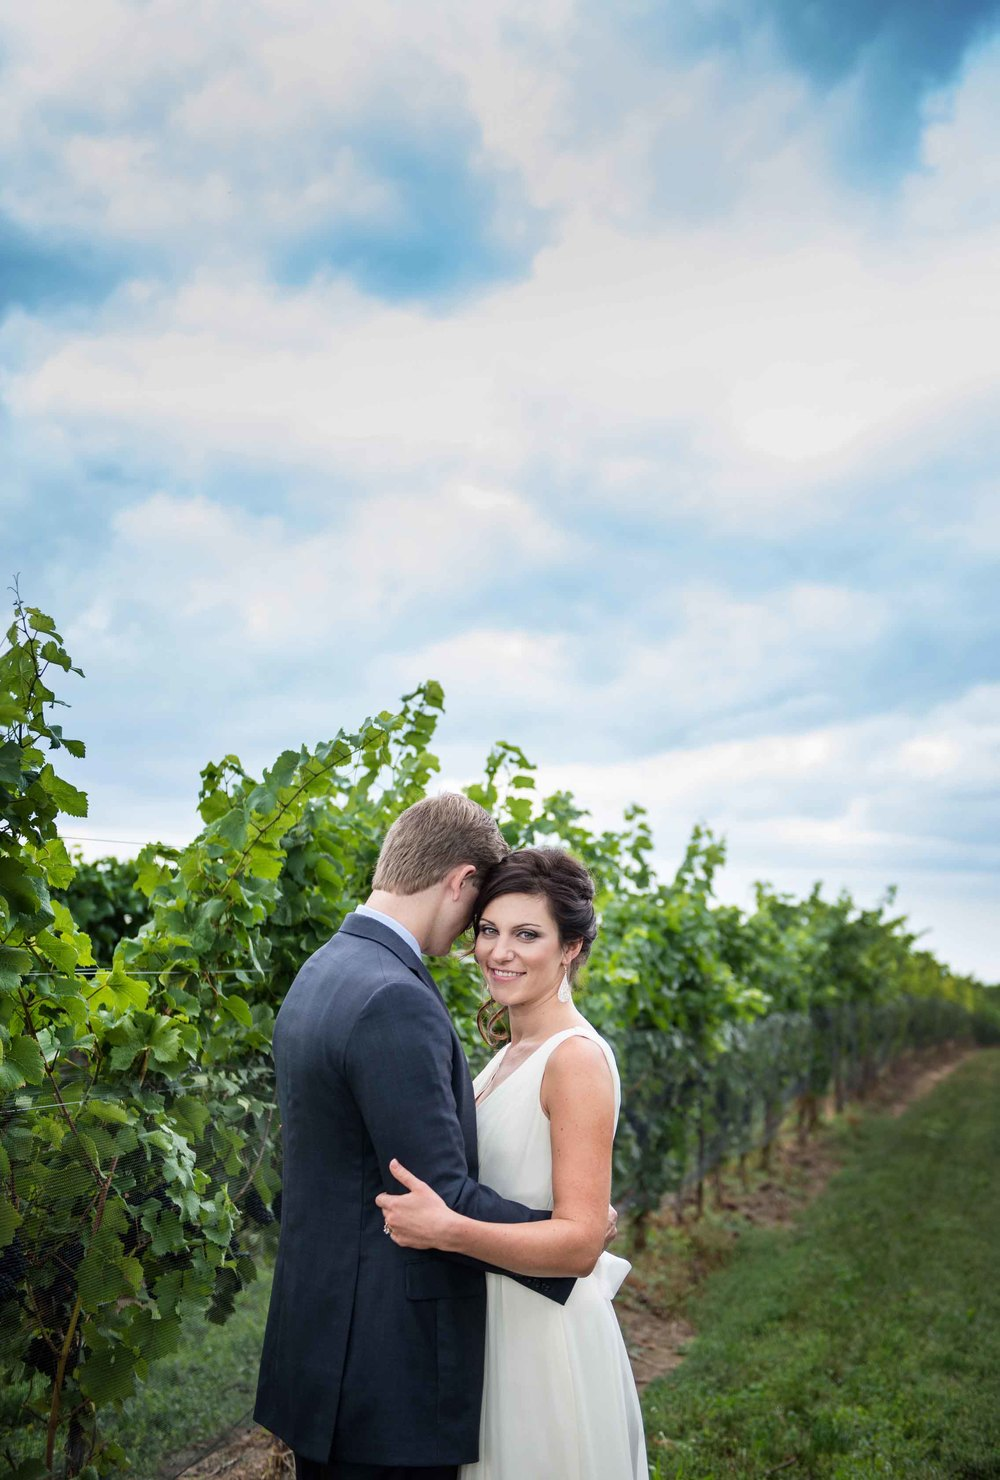 Sher and Brian Wedding by Sugar Photo Studios (23 of 322).jpg